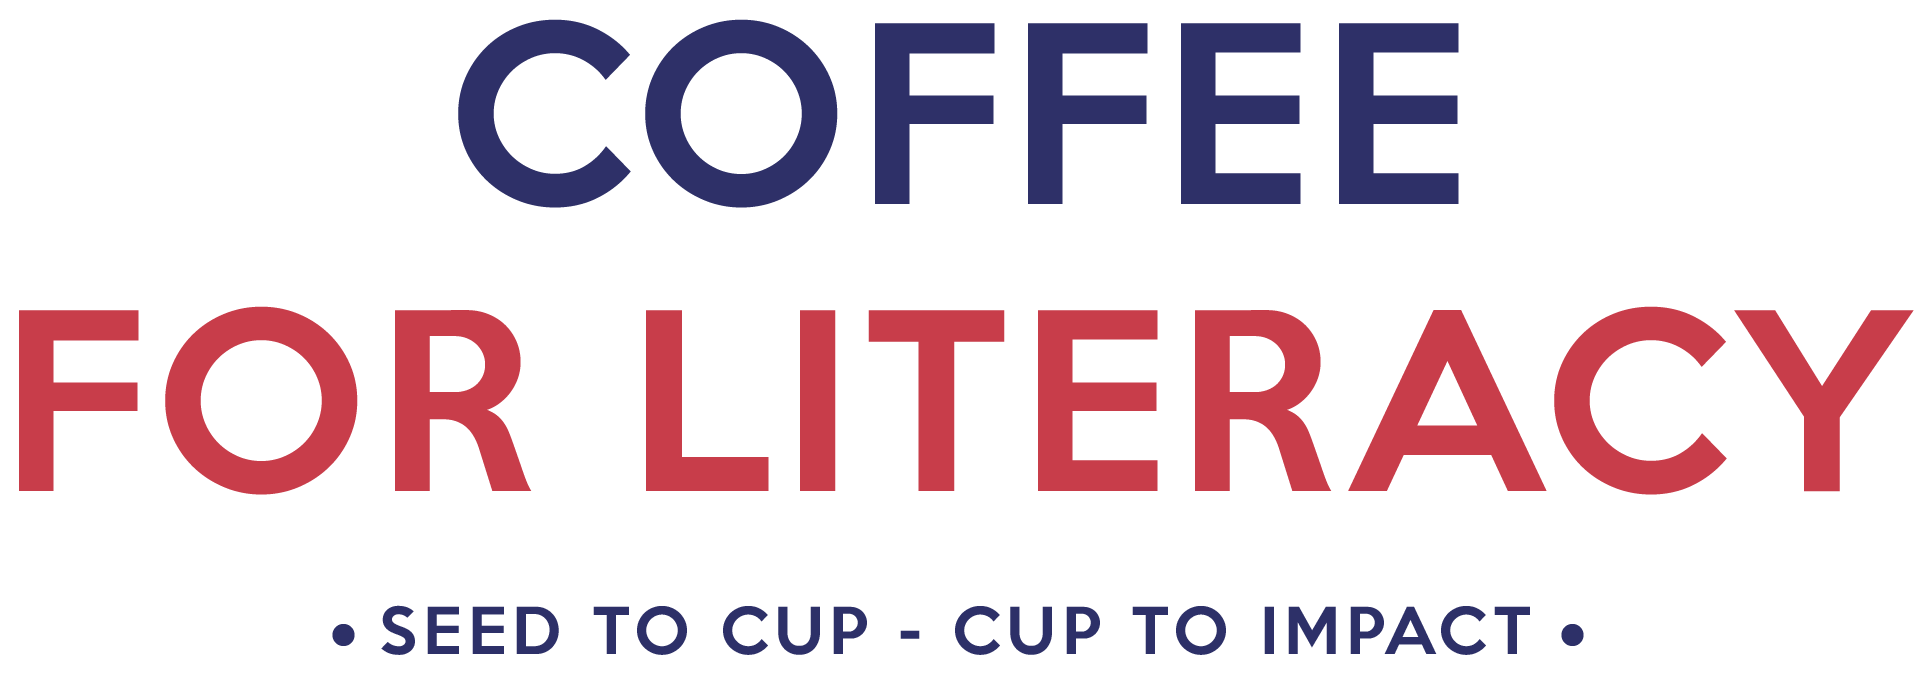 Coffee for Literacy Logo.png